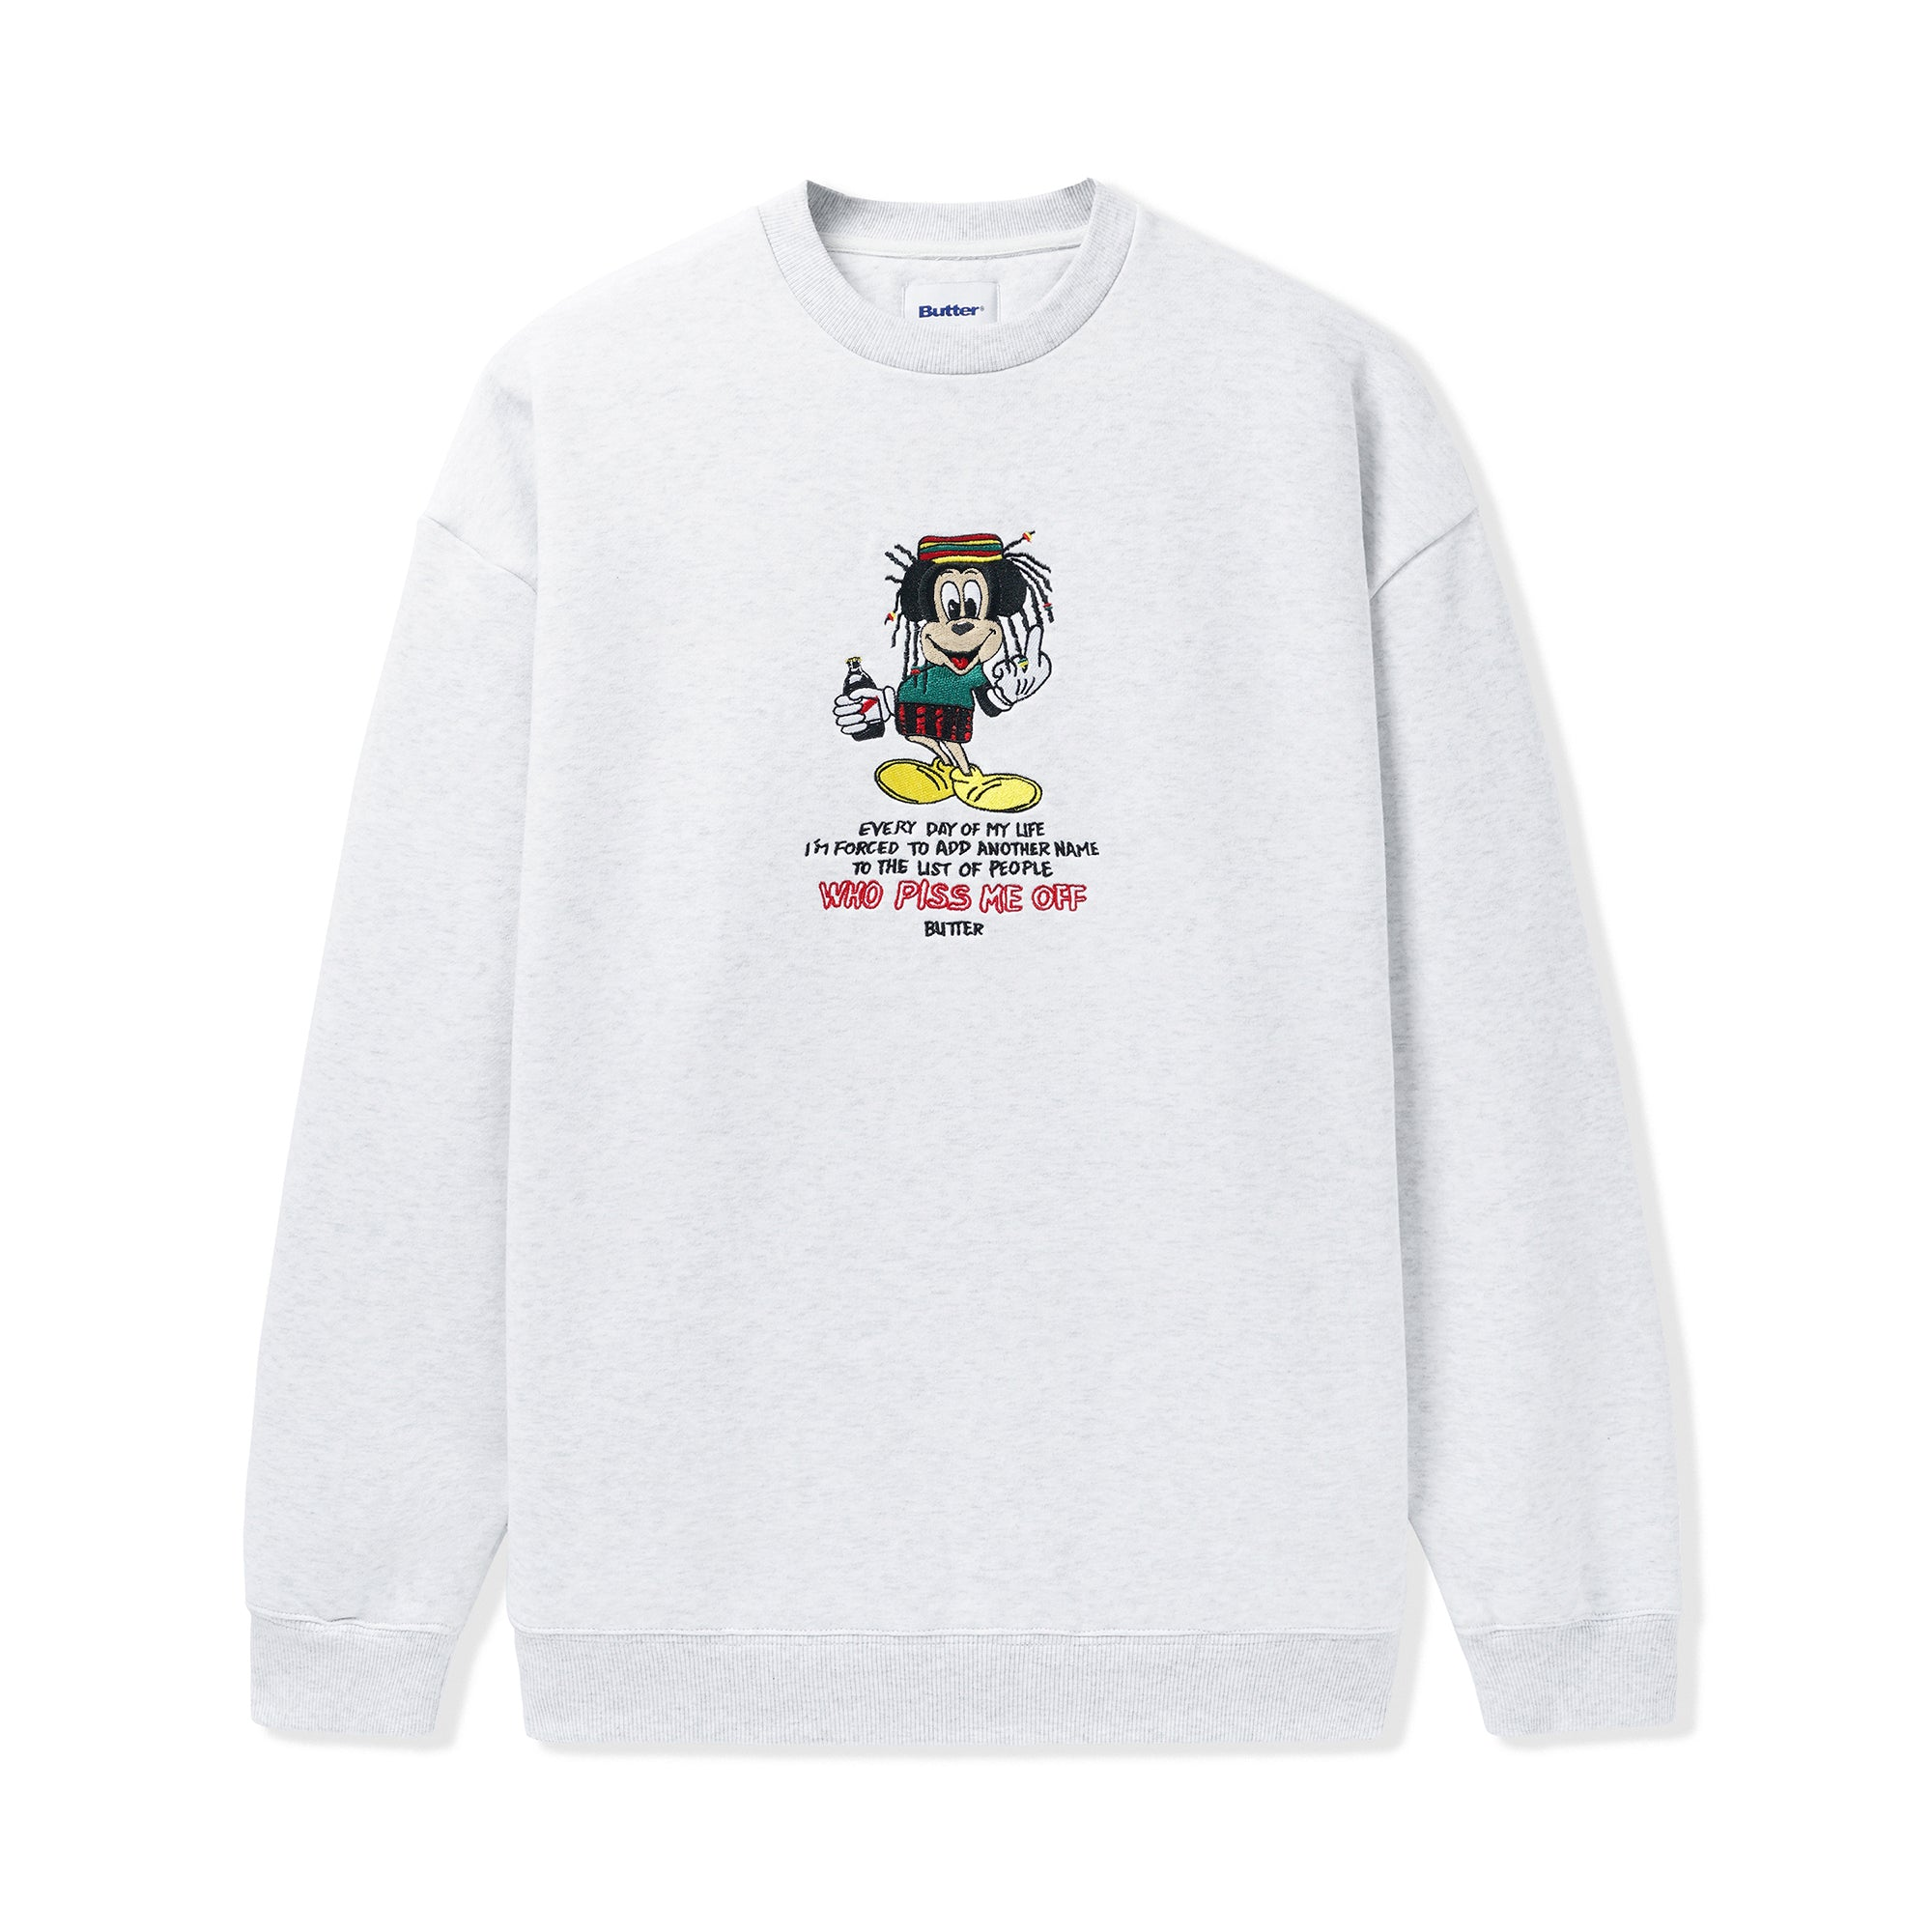 Butter Goods Everyday Crewneck Product Photo #1